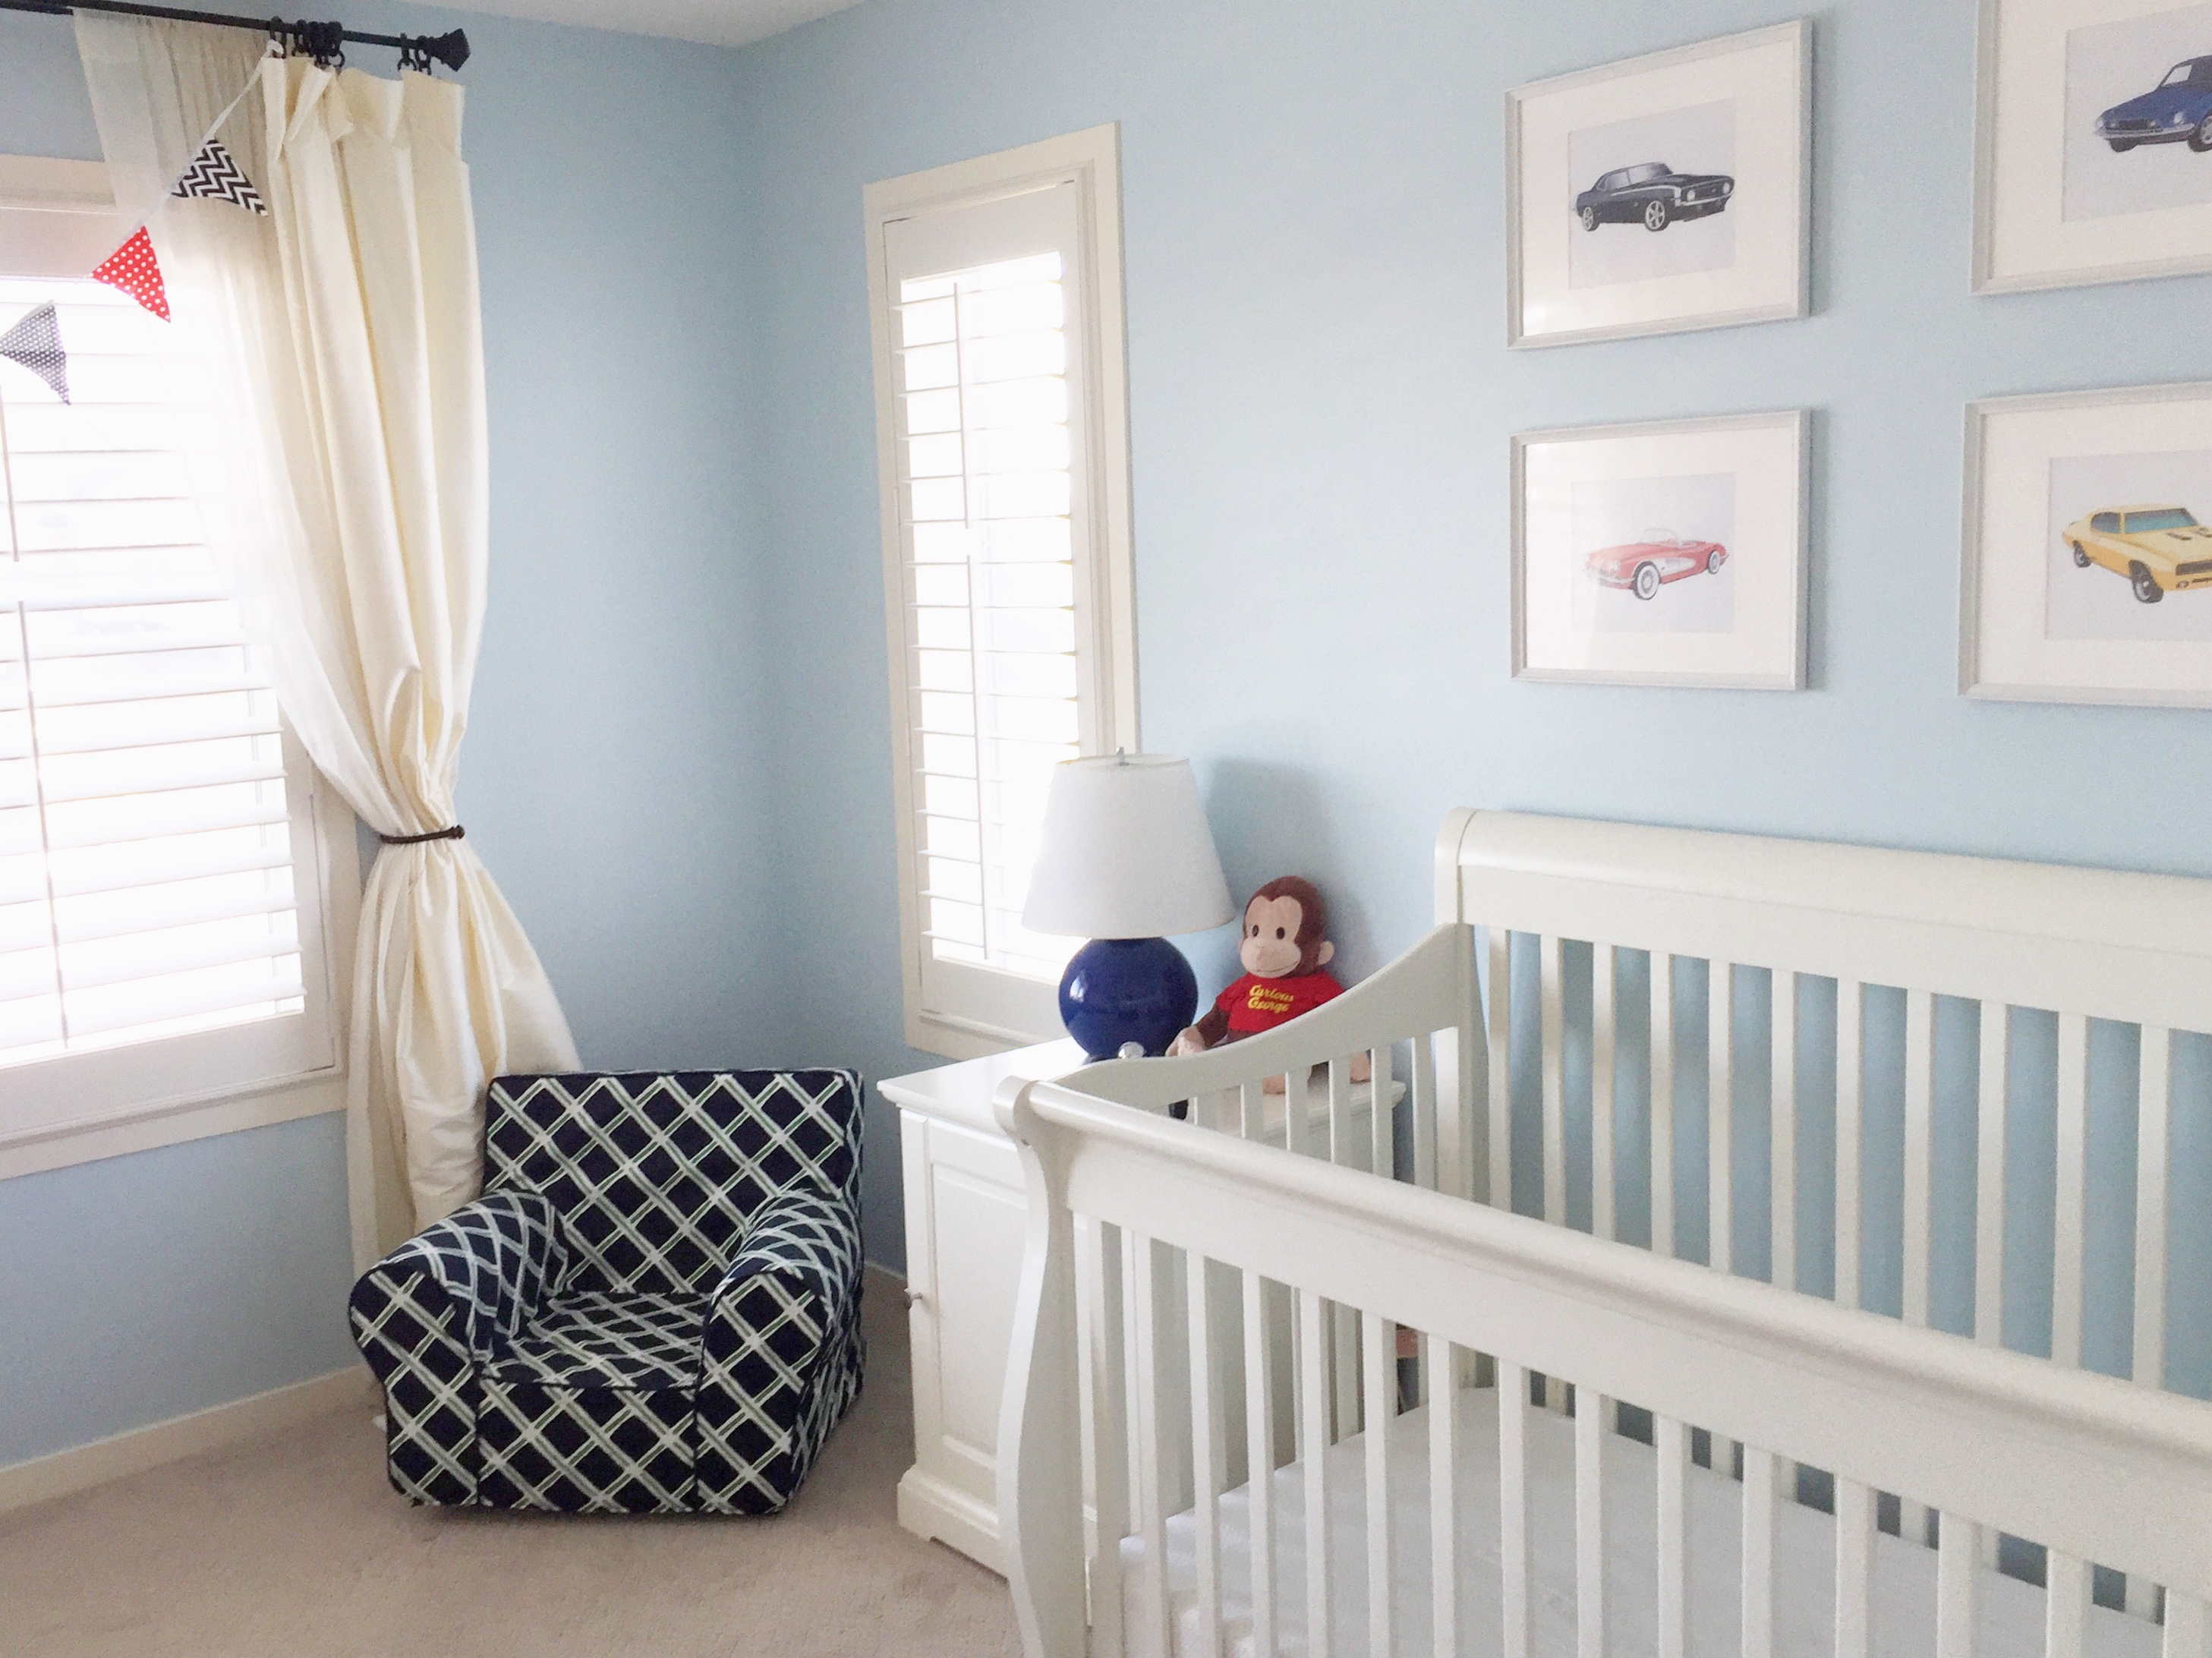 Great organizing tips for easy cleaning and maintenance of the kids' rooms